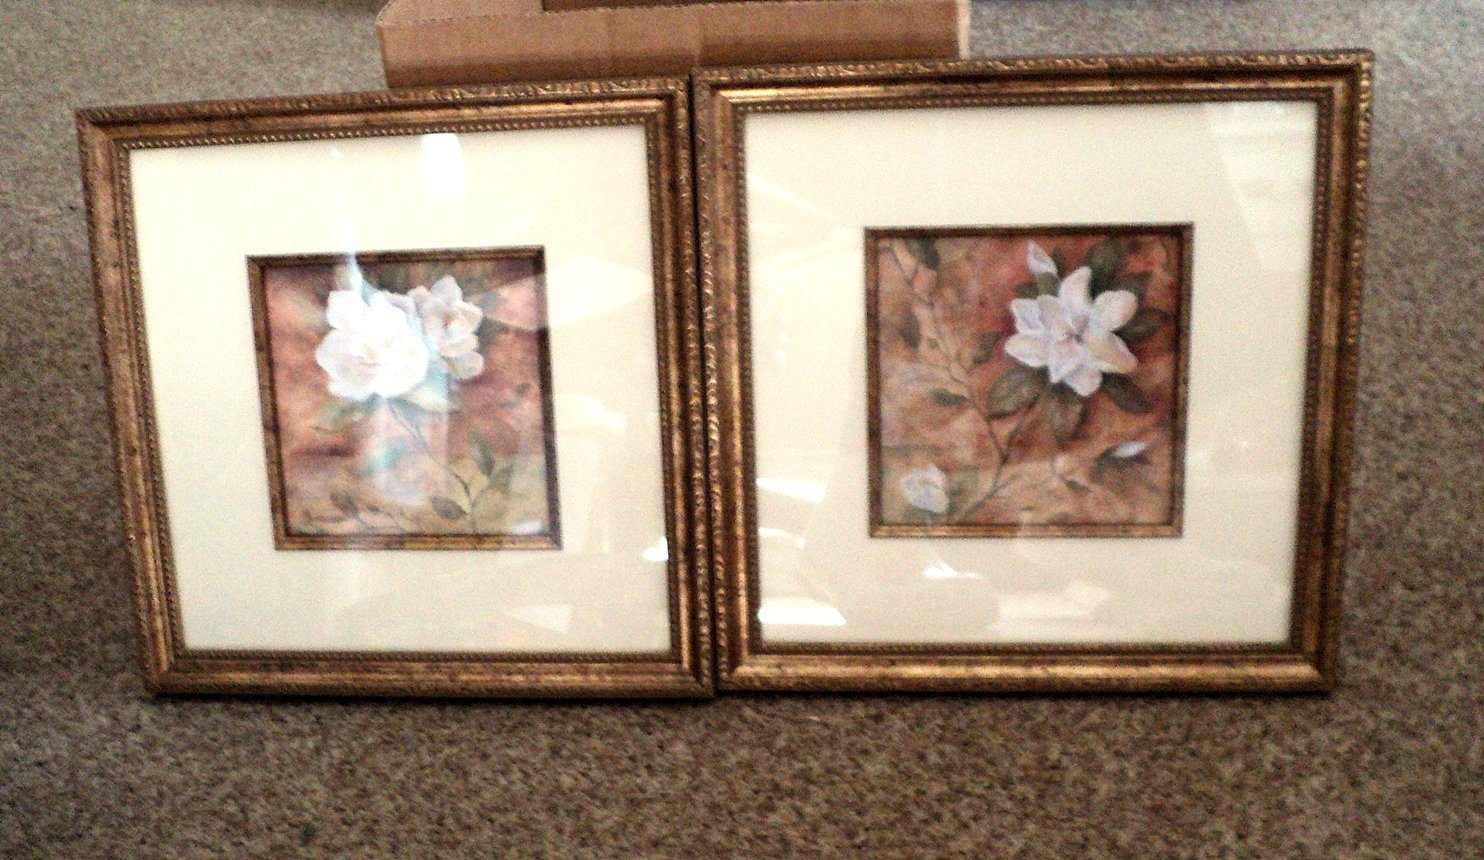 Two New Framed White Rose Pictures #301973